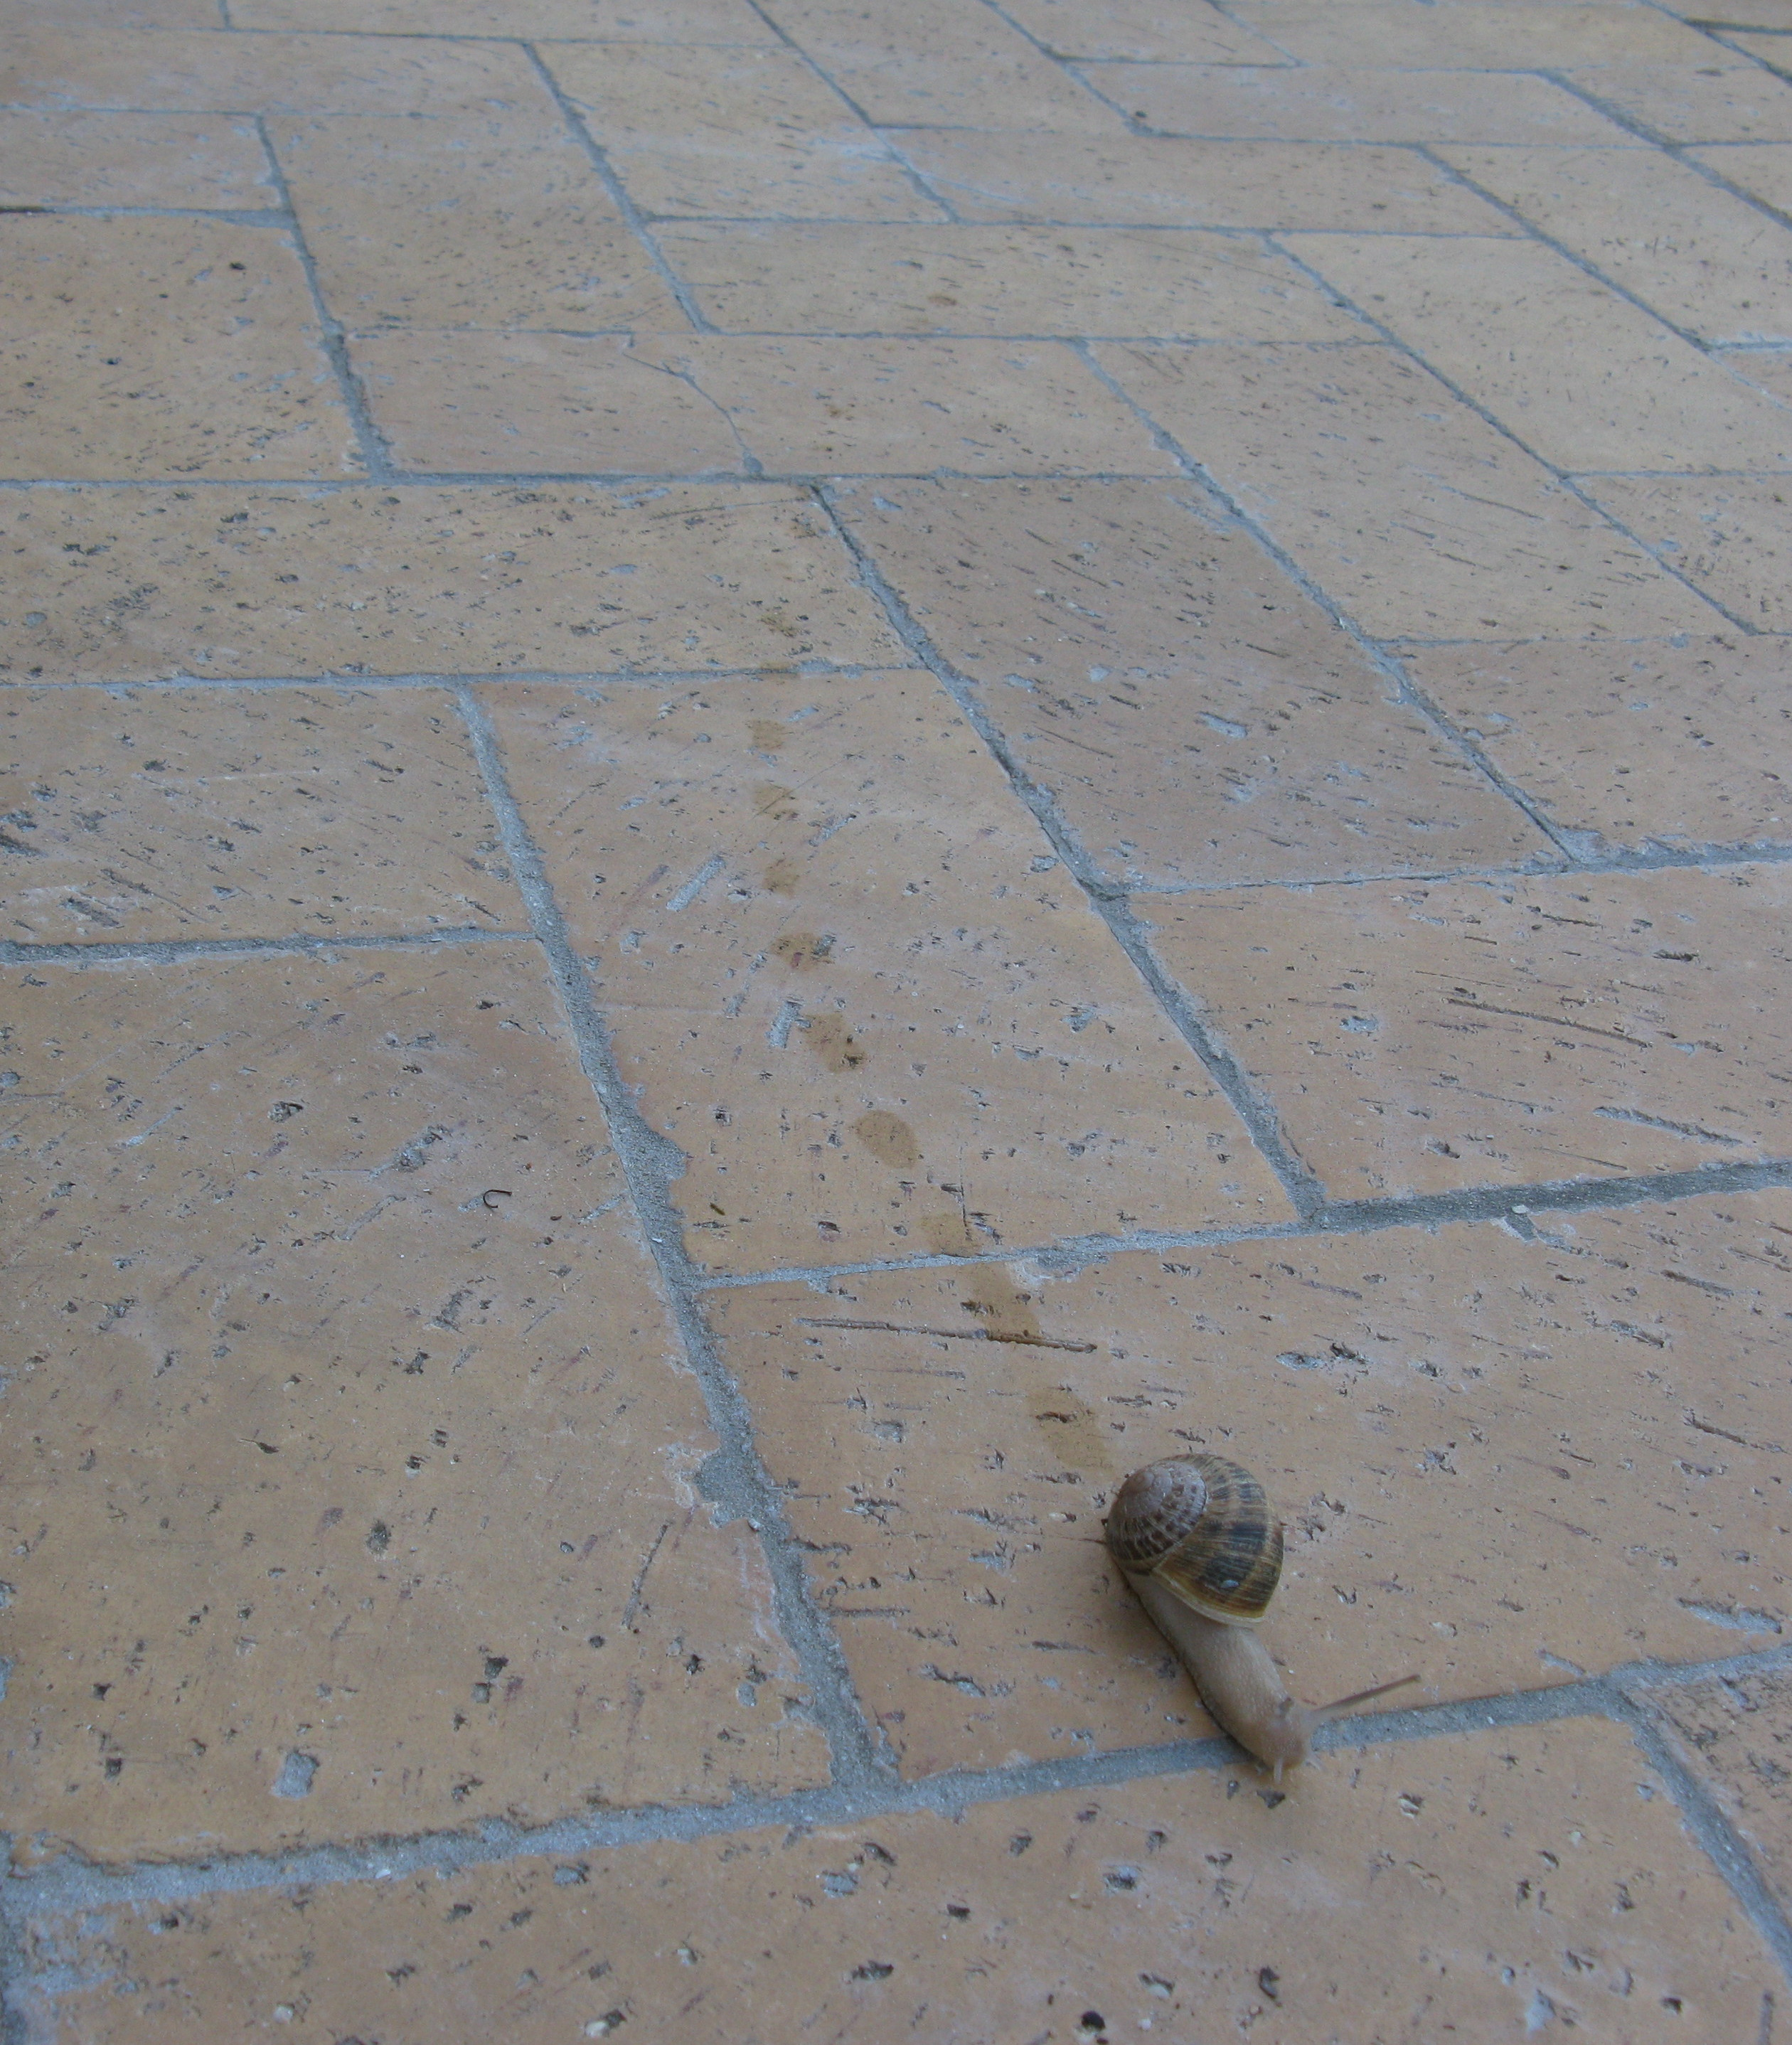 File:Land Gastropod leaving mucus-conserving trail IMG 1670s